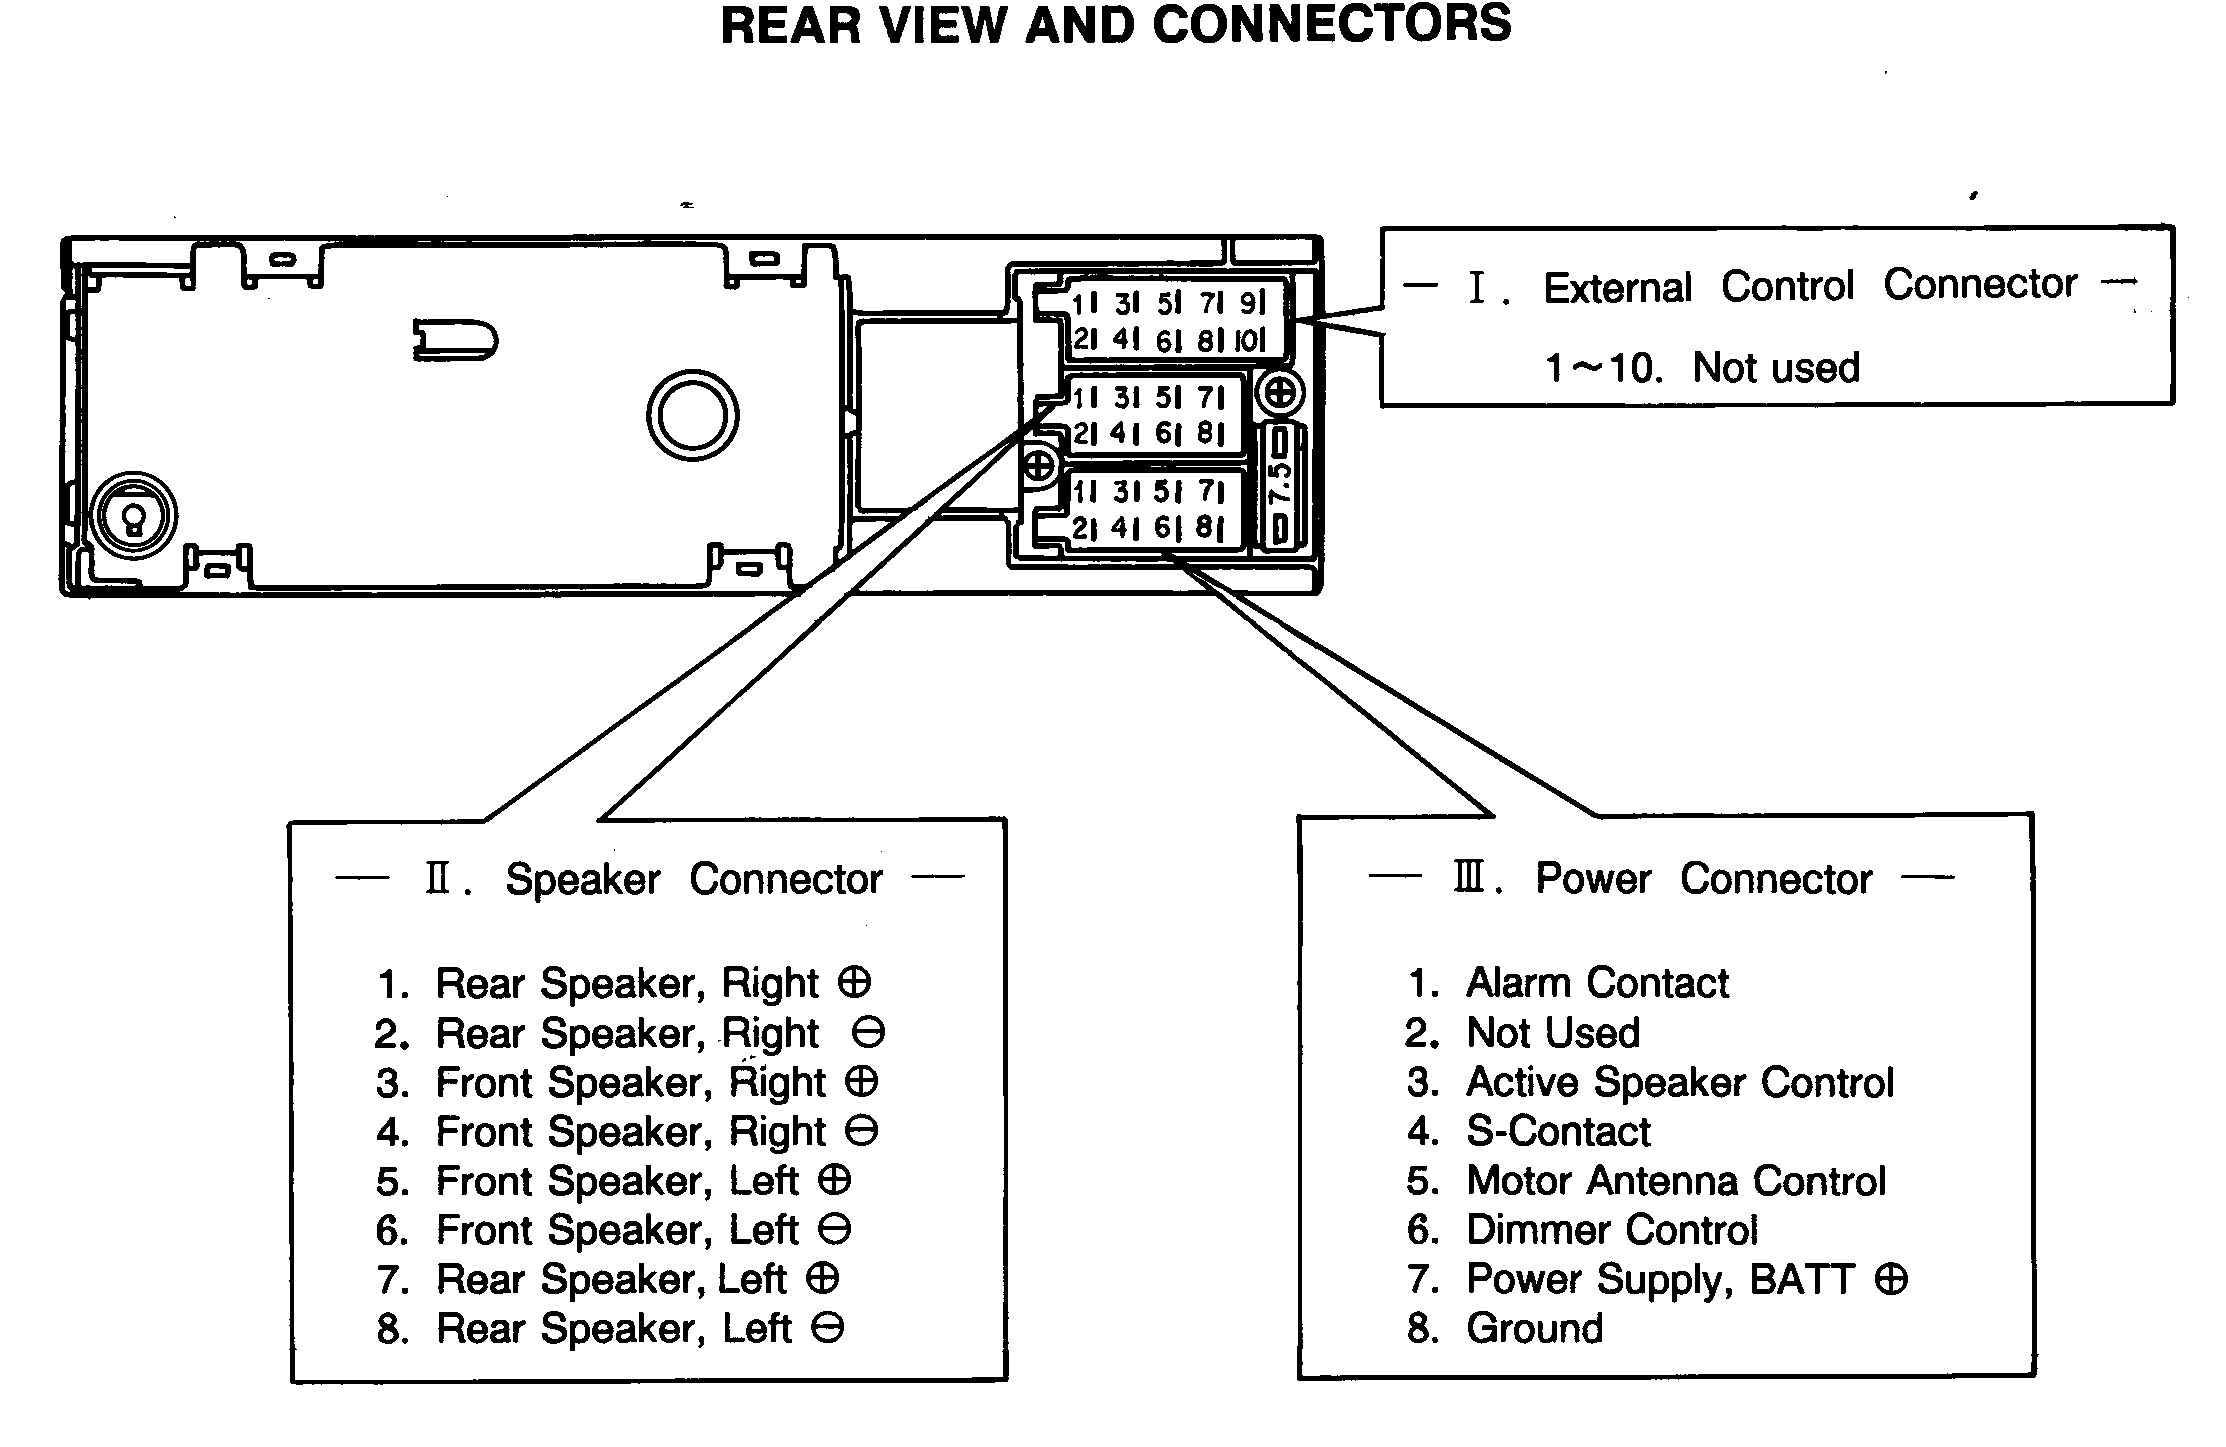 Bose Car Stereo Wiring Diagram Car Stereo Wiring Diagram Newfangled Repair Wire Harness Codes Bose Of Bose Car Stereo Wiring Diagram